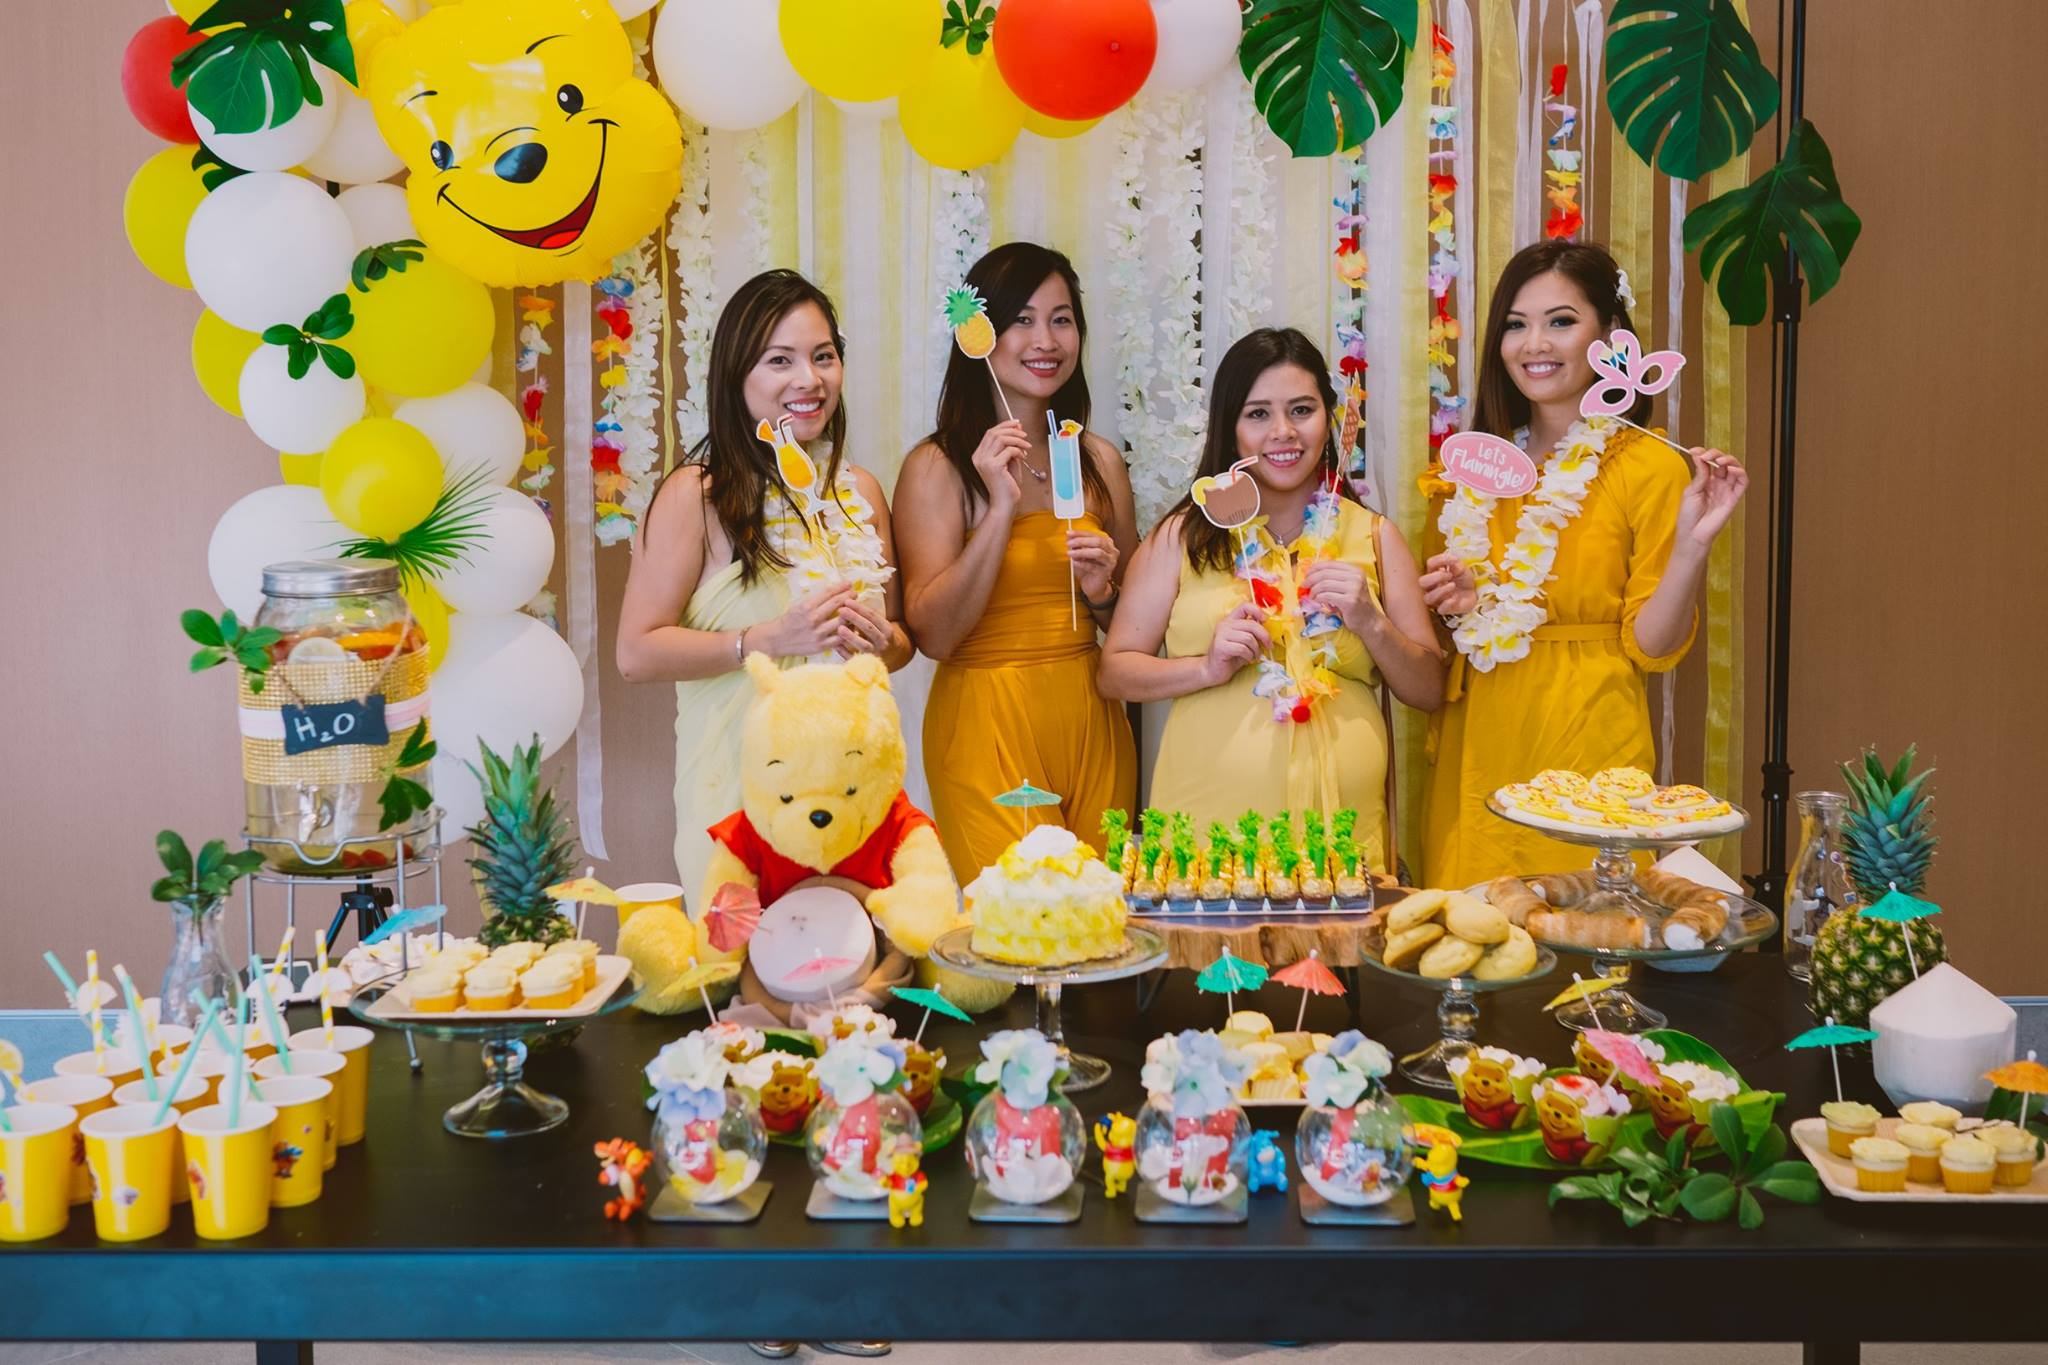 WINNIE THE POOH ON TROPICAL VACATION PARTY THEME